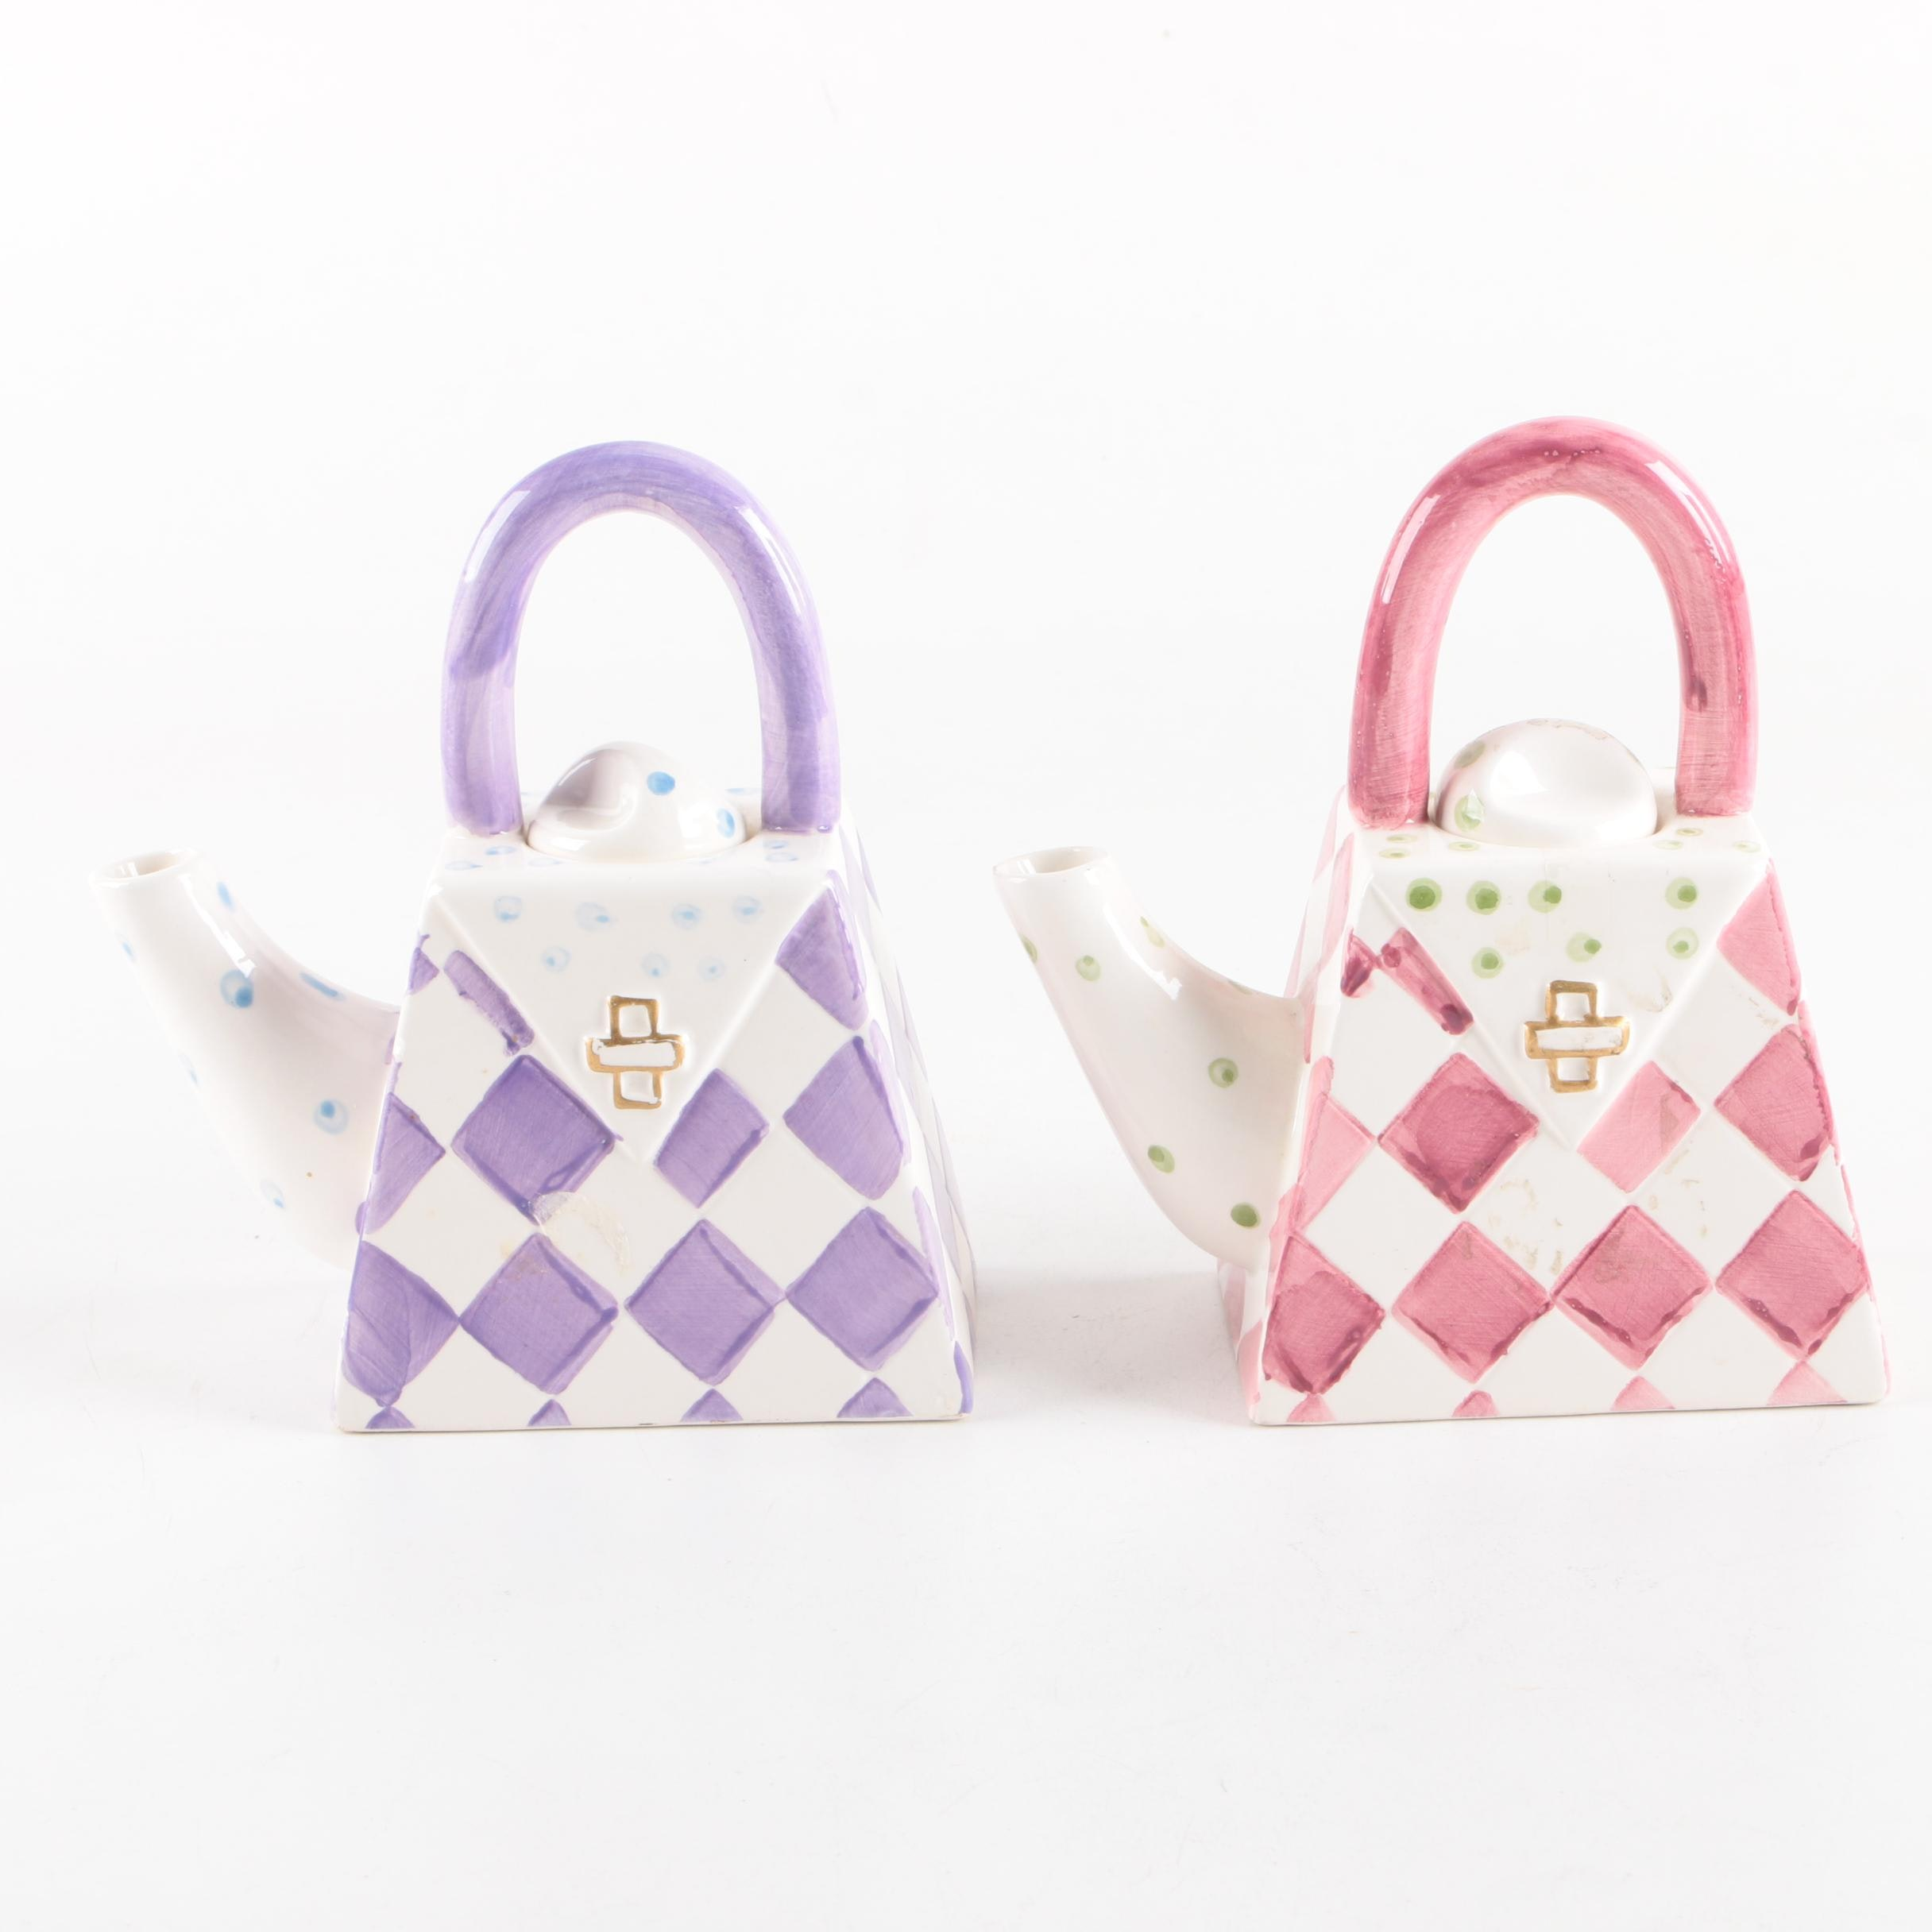 Purse Themed Ceramic Teapots